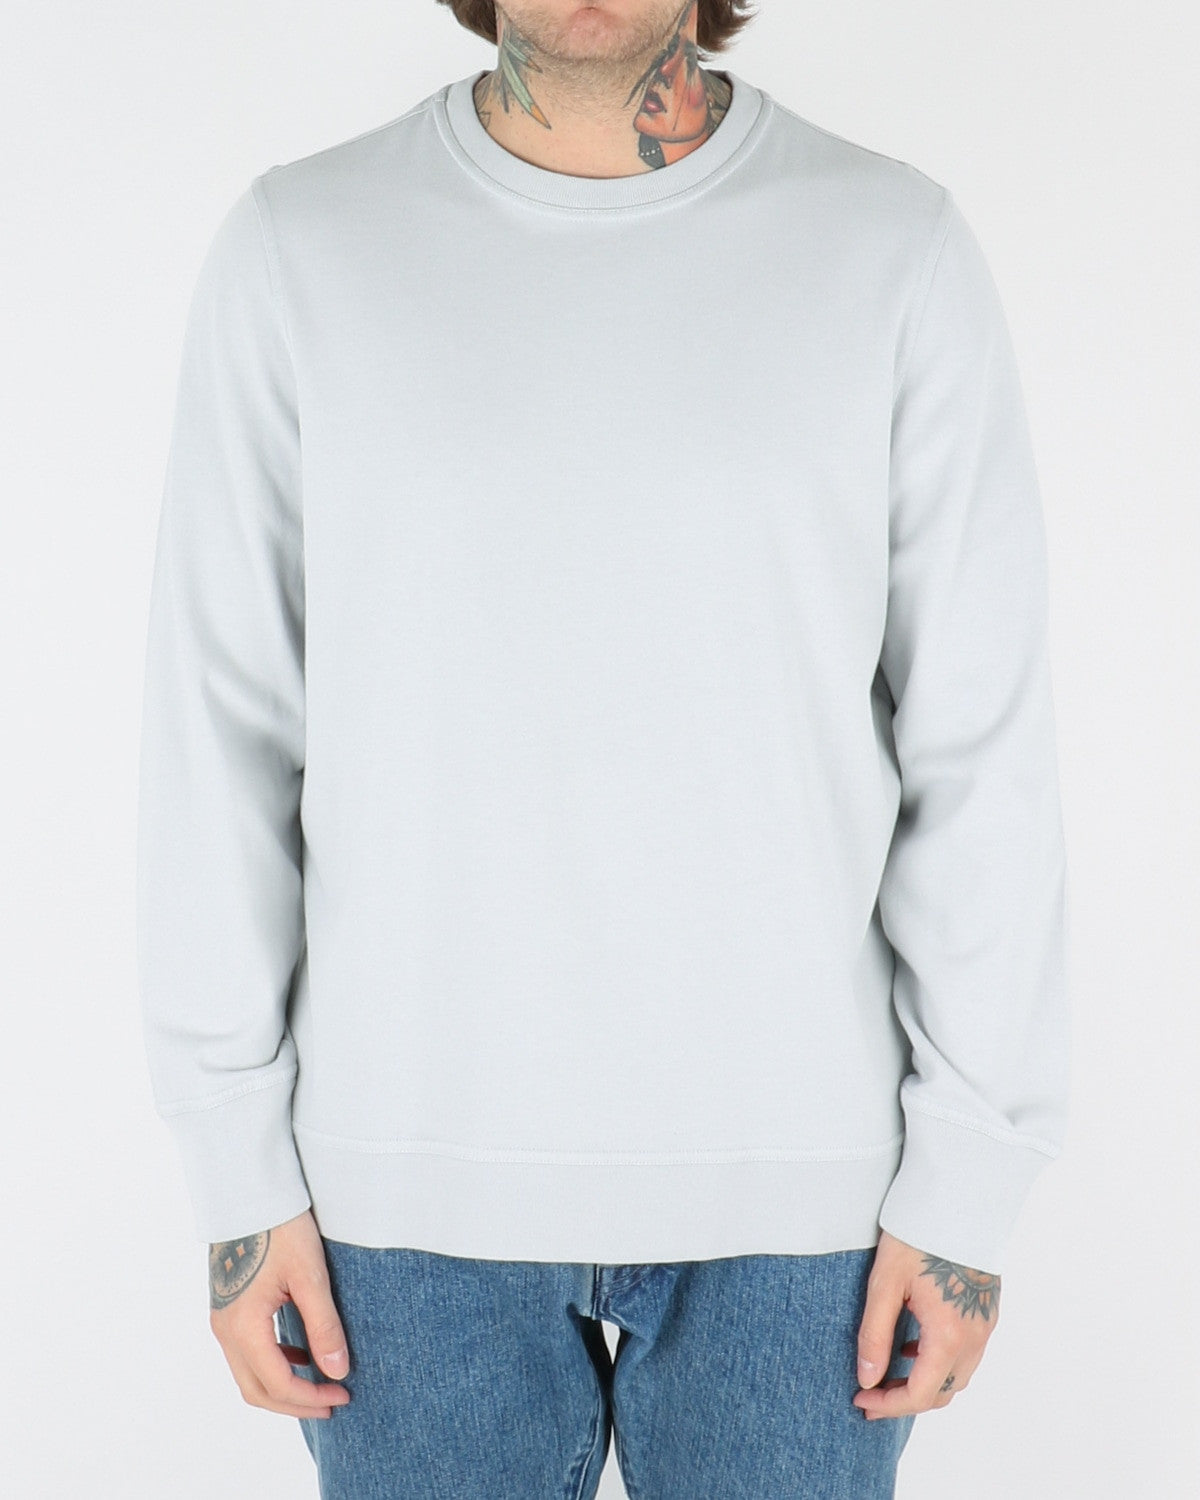 whyred_murry lightweight sweatshirt_vapor blue_view_1_2